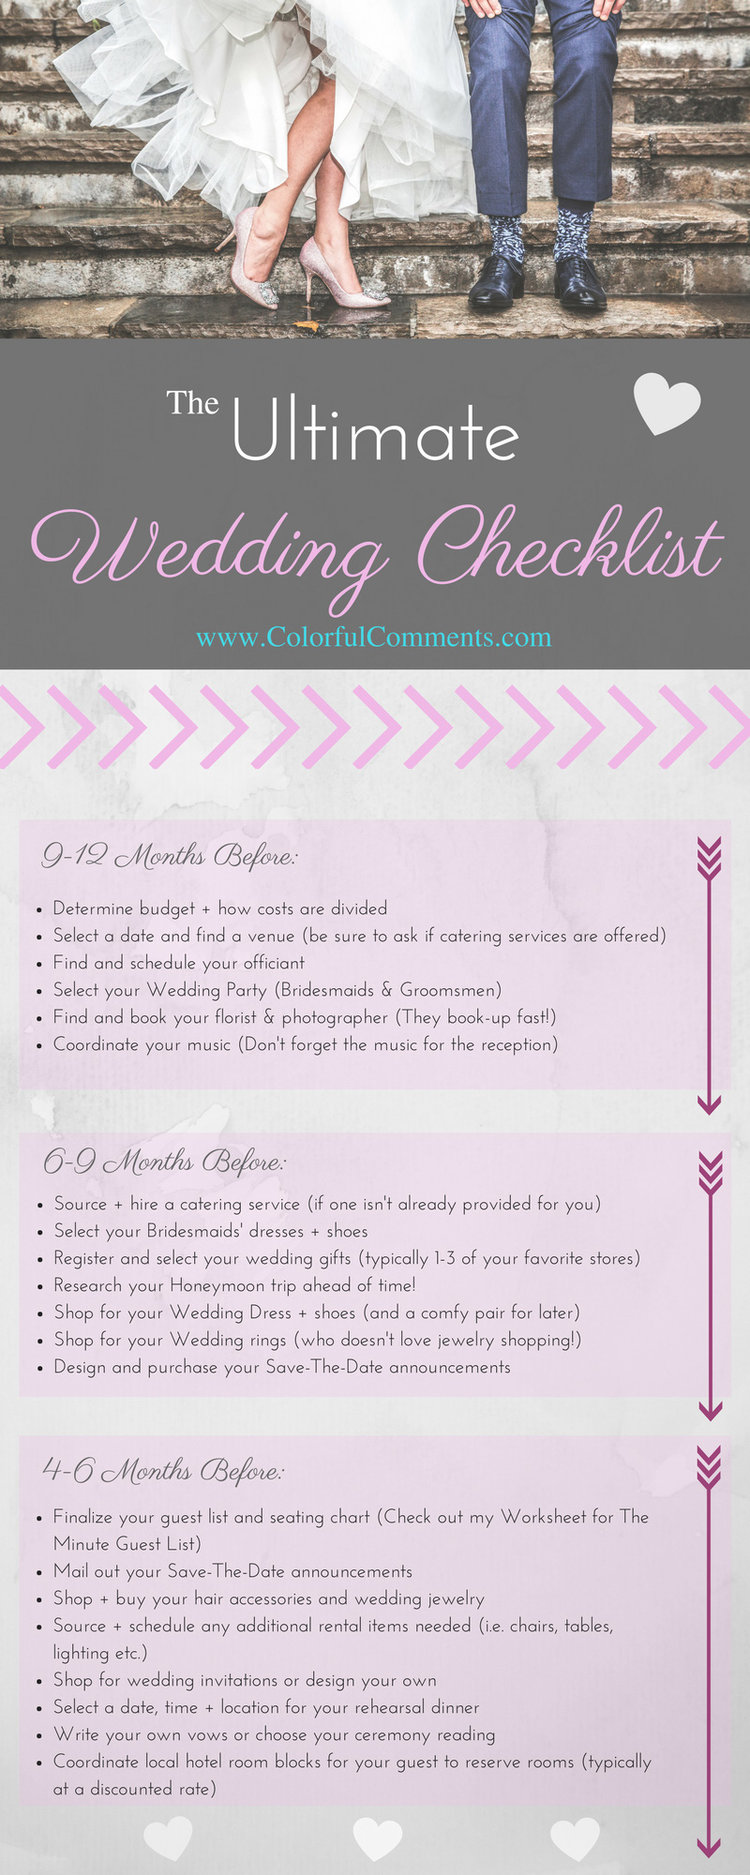 Abc Tracing Worksheets Free Word The Ultimate Wedding Planning Package With Checklists  Free  Density Formula Worksheet Pdf with Learning Coins Worksheet Pdf The Ultimate Wedding Checklistpgeditedjpg Column Subtraction Worksheet